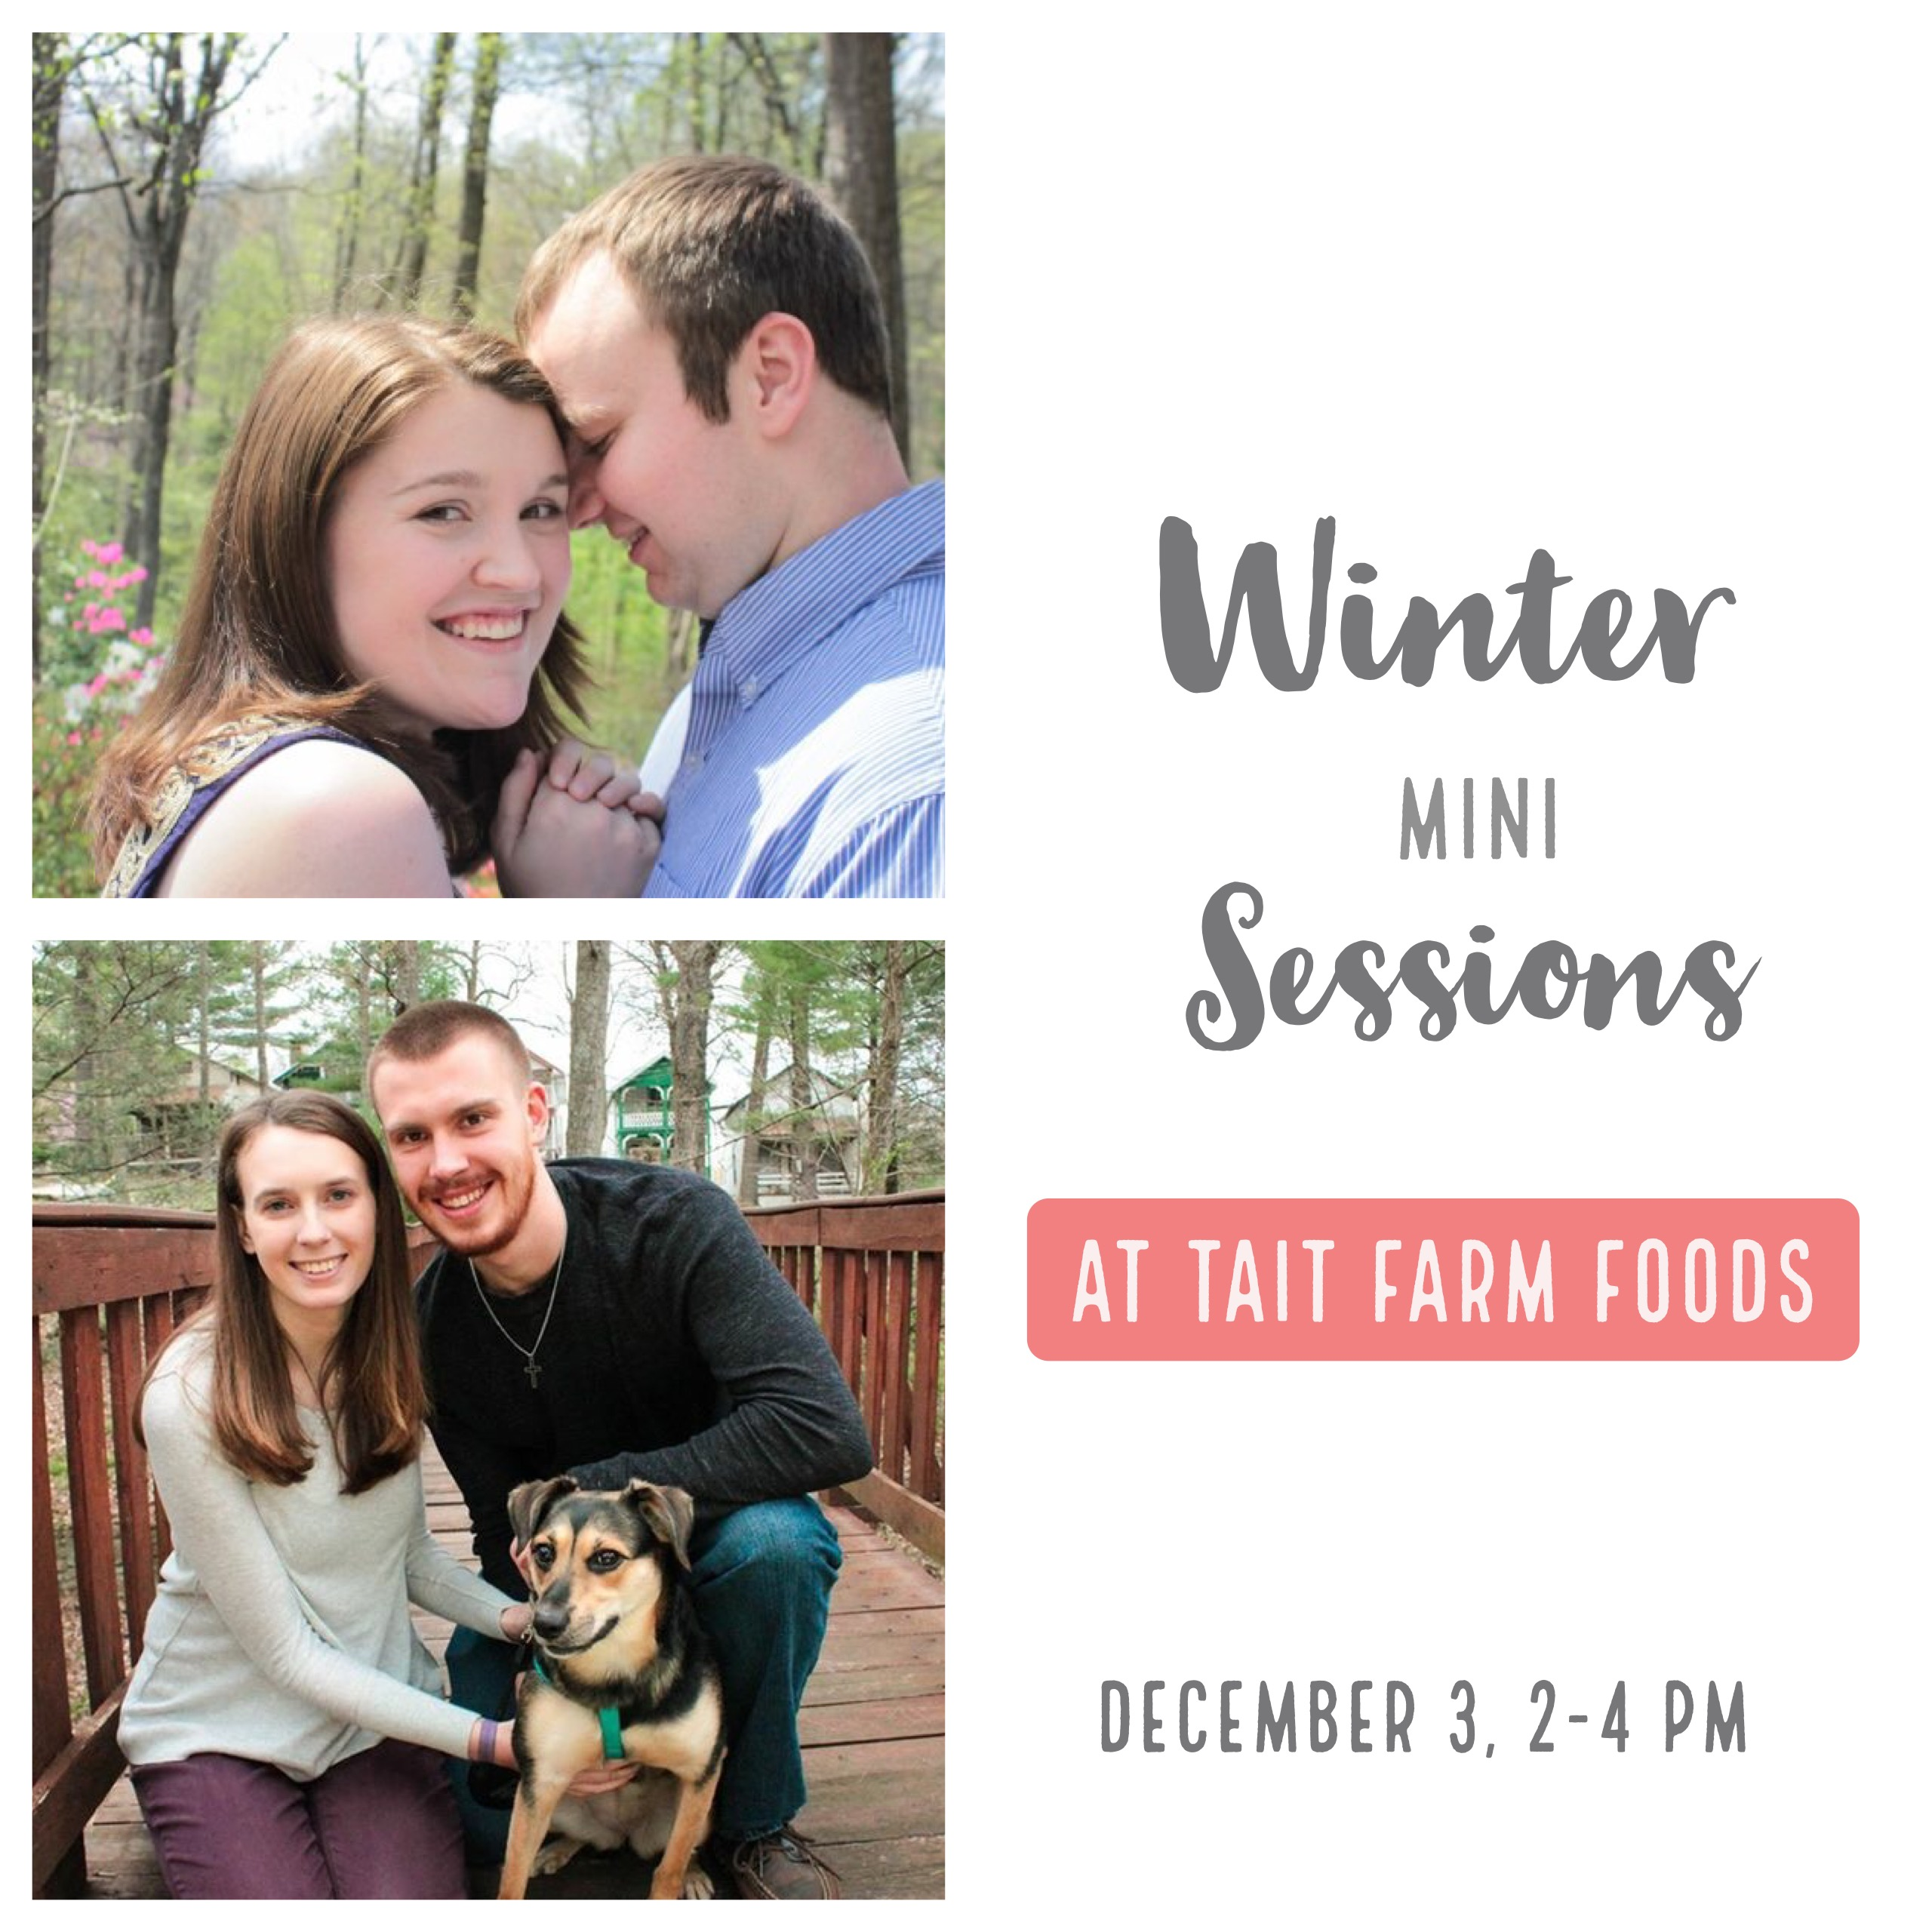 Winter Mini Sessions at Tait Farm Foods